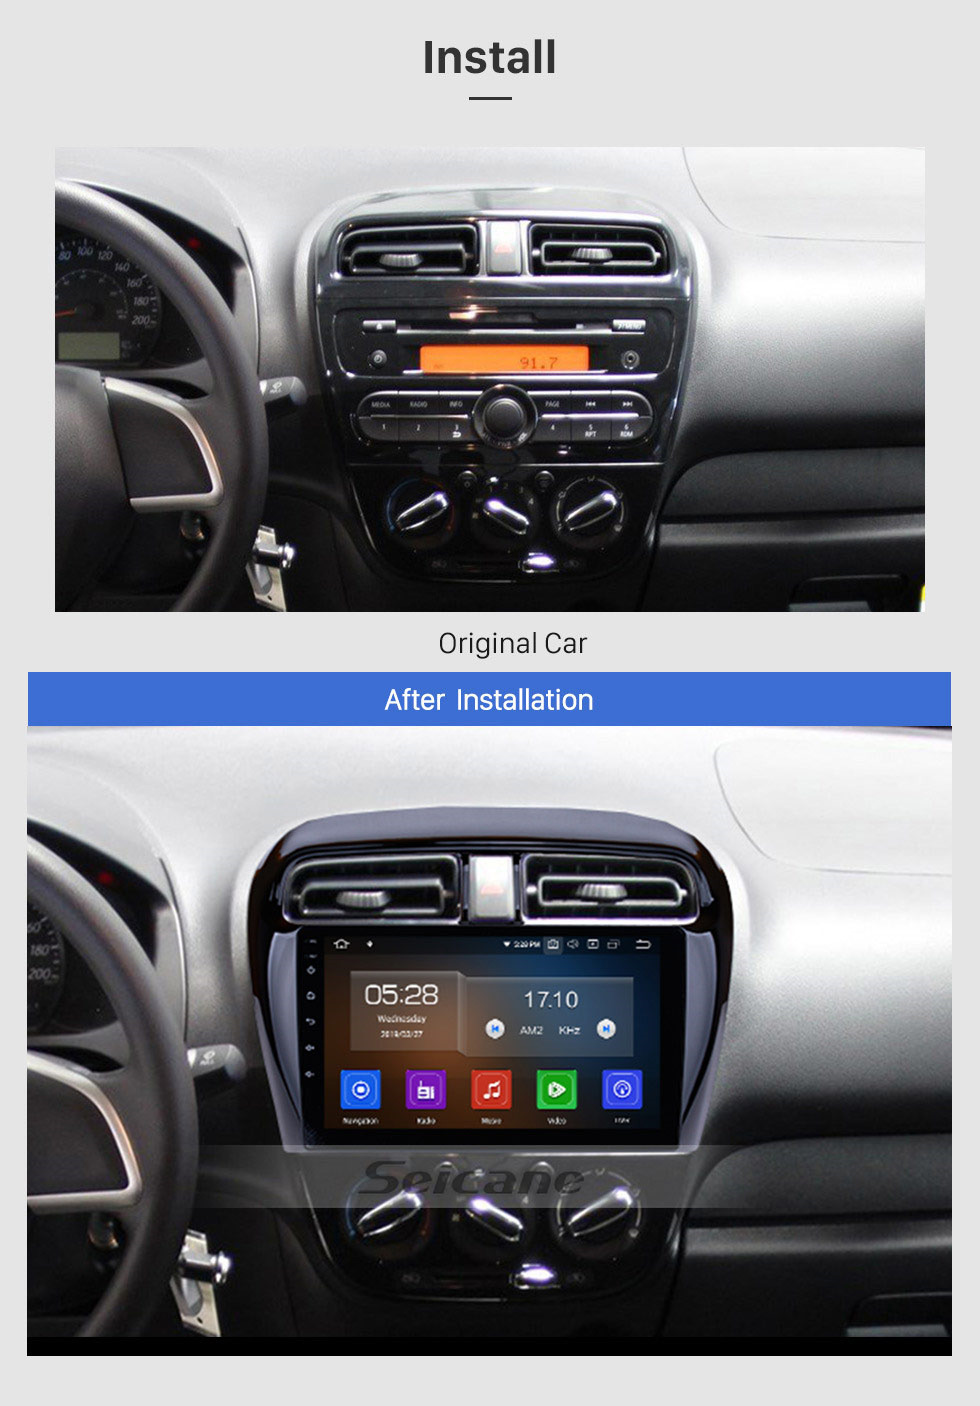 Seicane 2012-2018 Mitsubishi Mirage 9 inch Android 9.0 GPS Navigation Full Touch Screen WiFi FM Radio USB Carplay Bluetooth SWC OBD2 Backup Camera DVR DAB